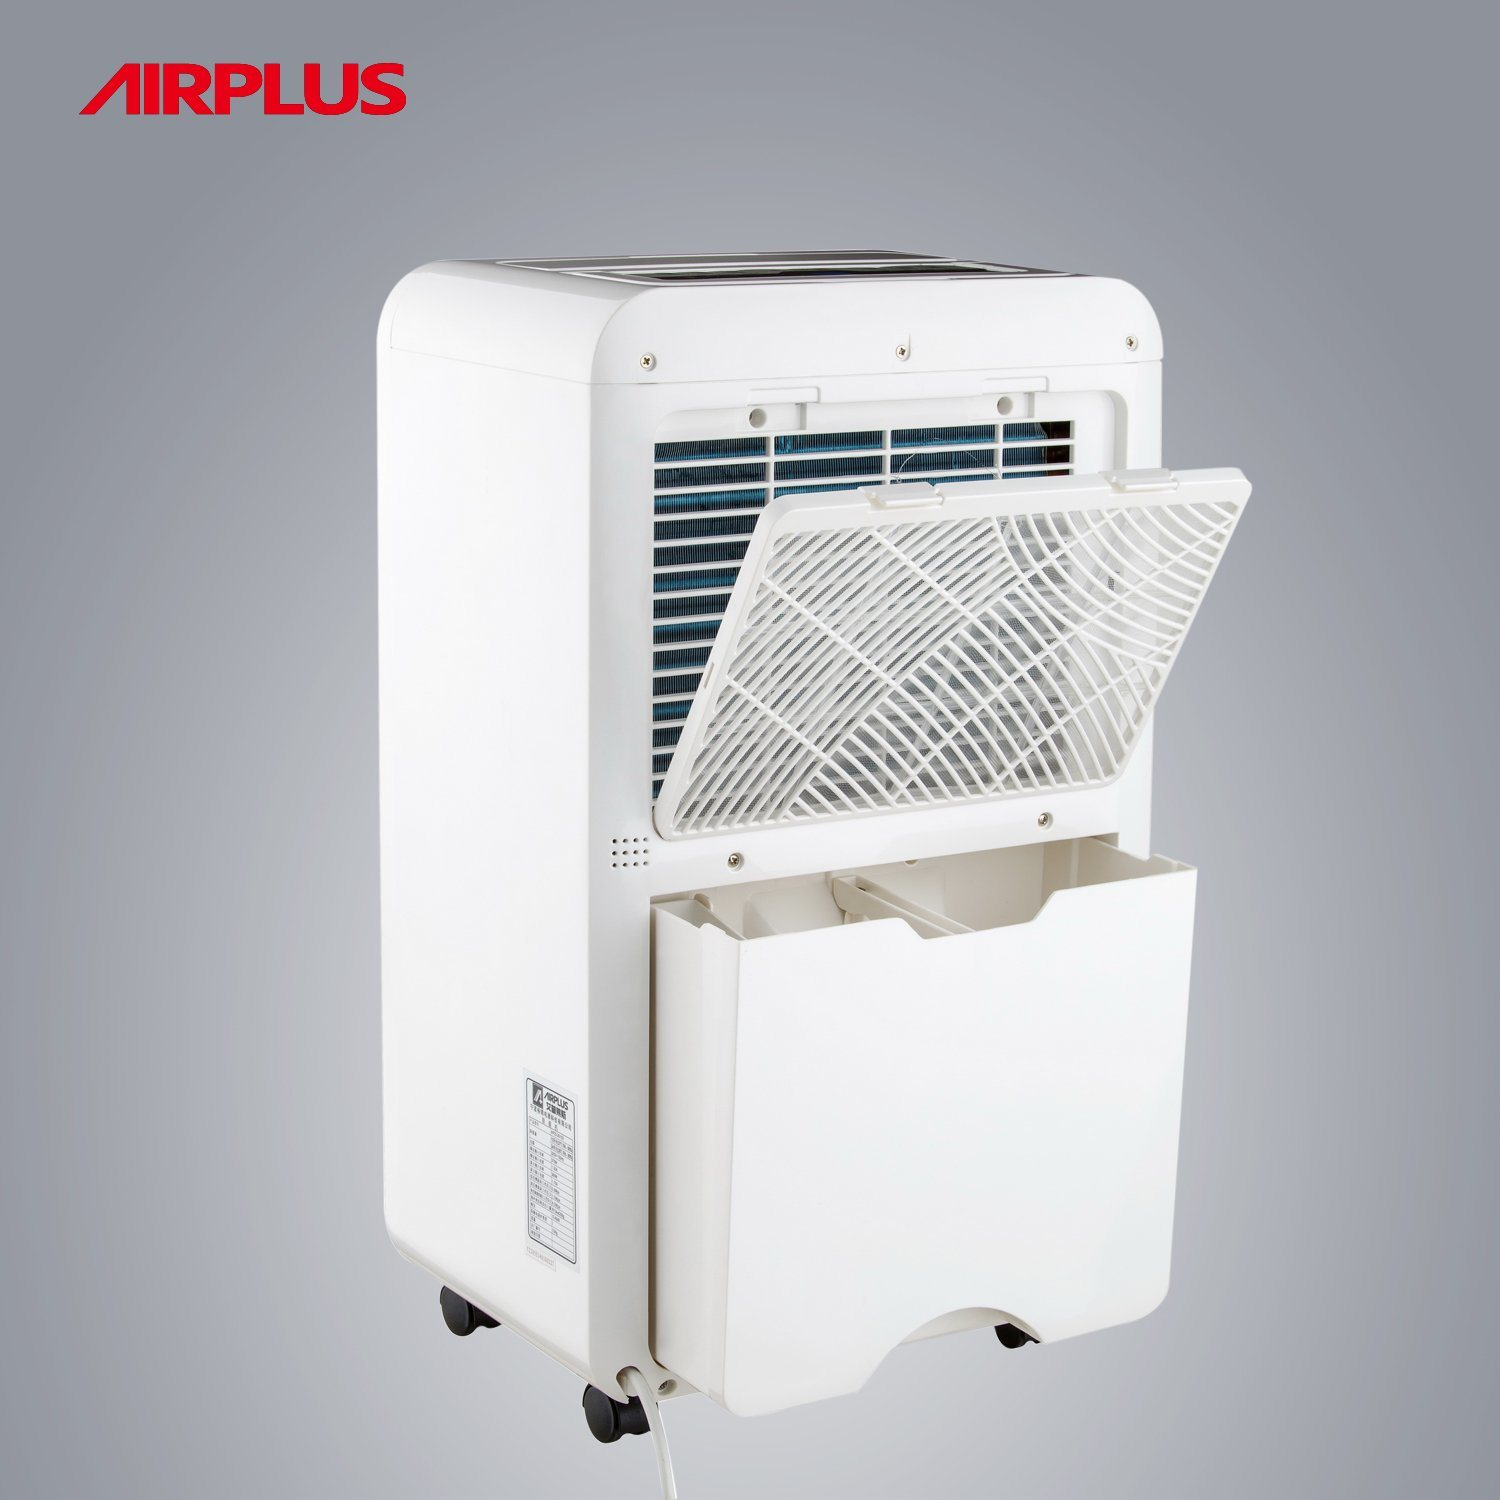 LED Display Electronic Portable Dehumidifier with 24 Hours Timer